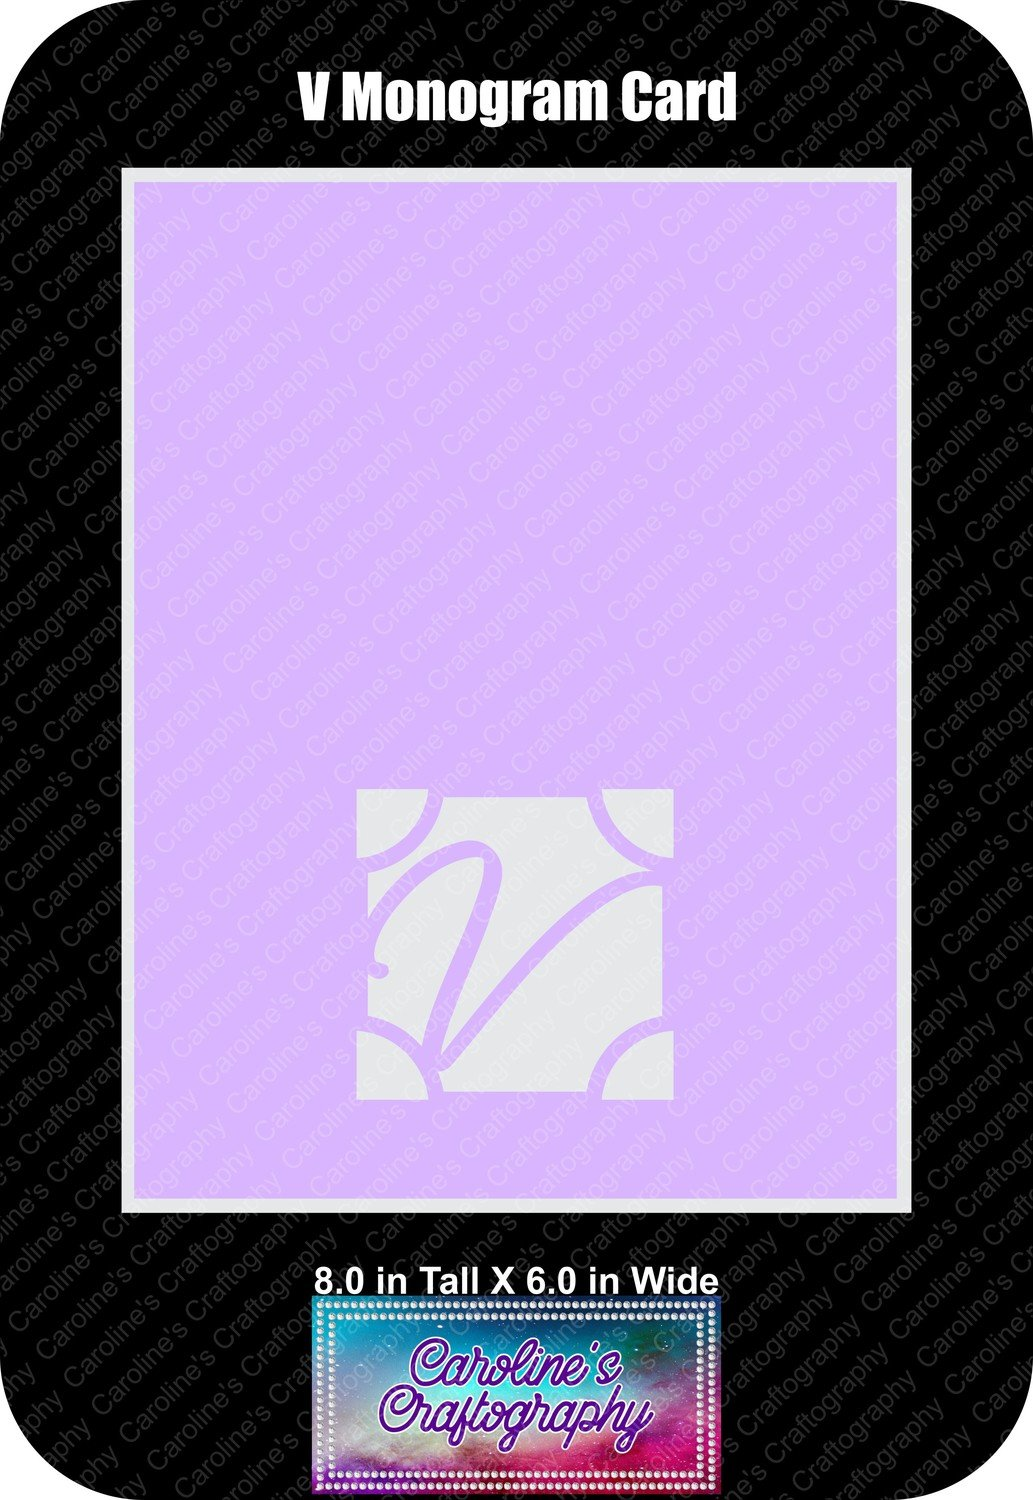 V Monogram Card Base